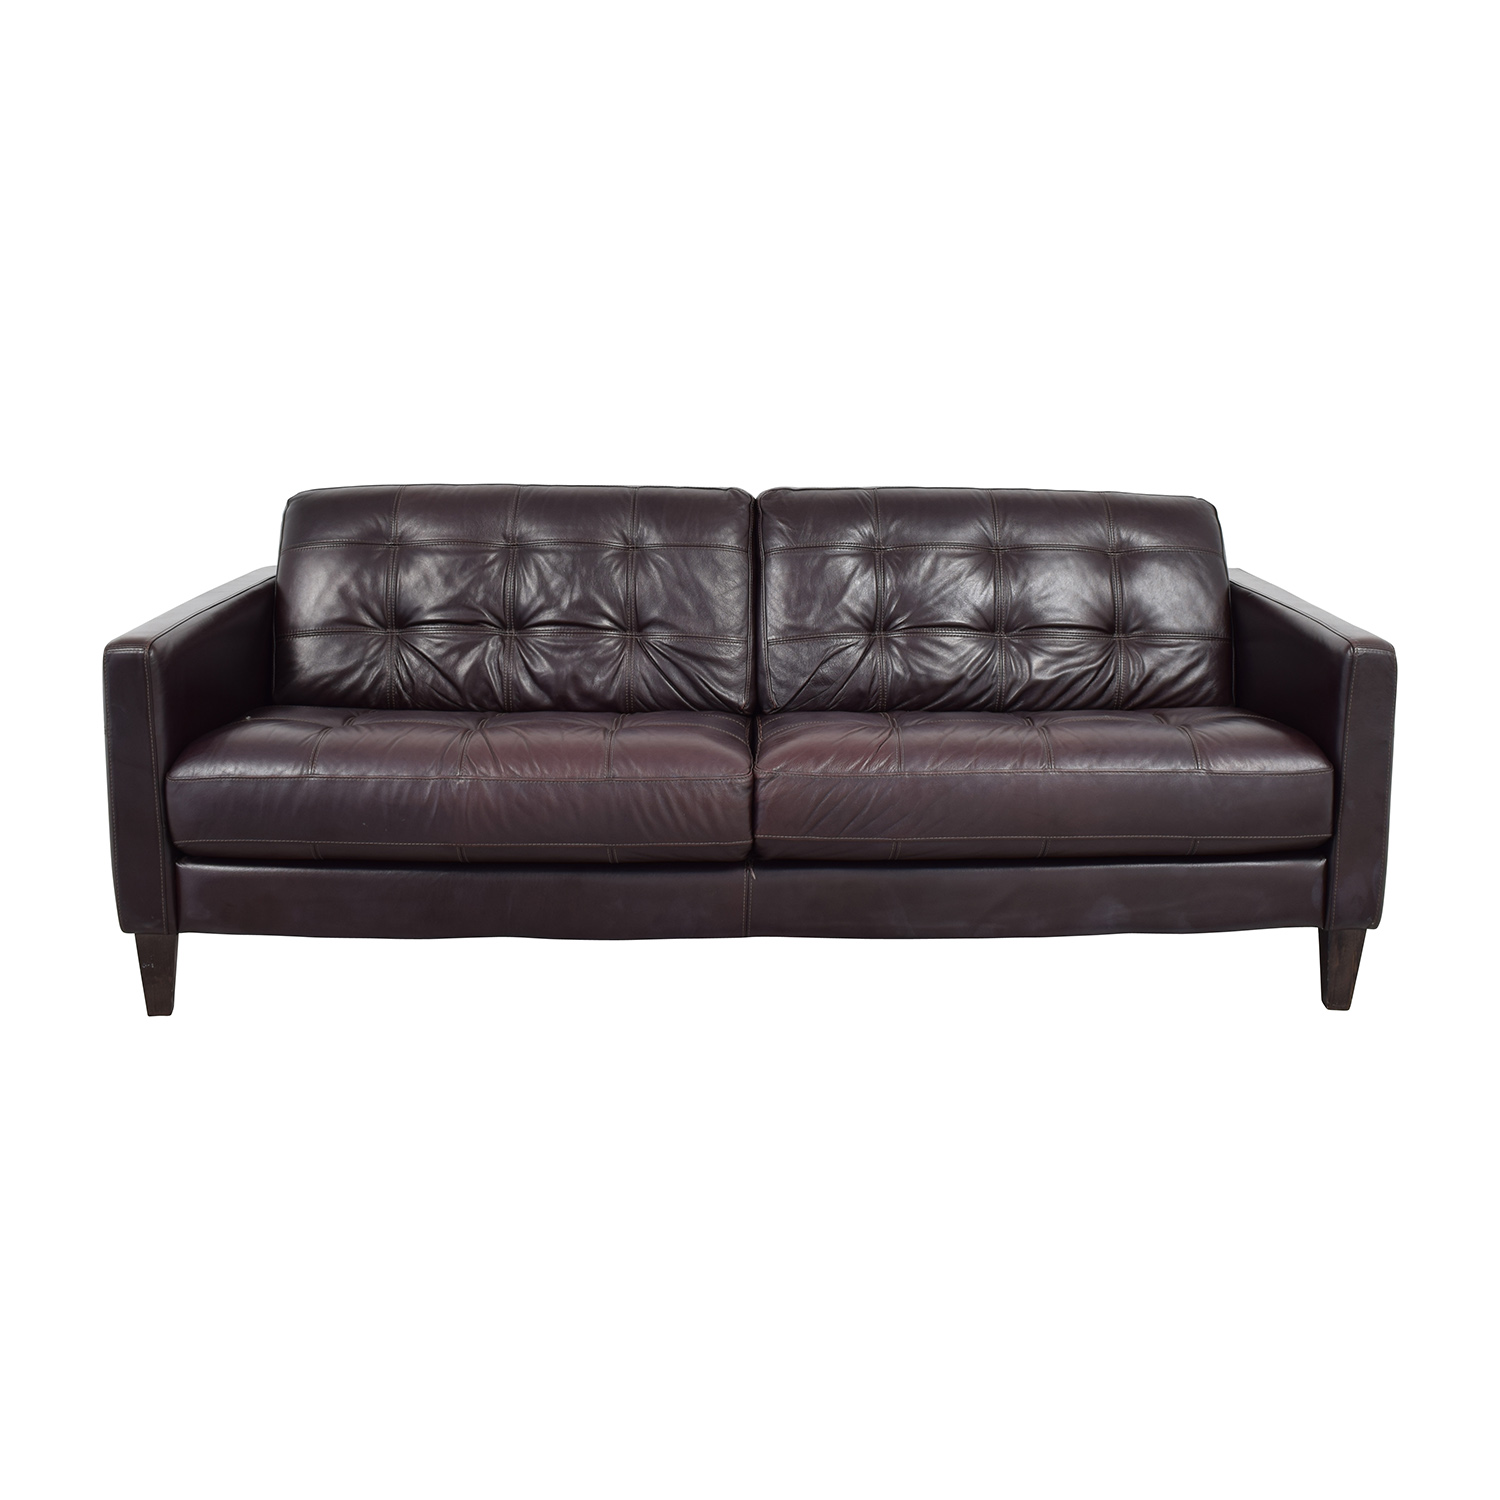 Macys Leather Chair Milan Leather Sofa Milan Leather Sofa By Savvy Is Fully